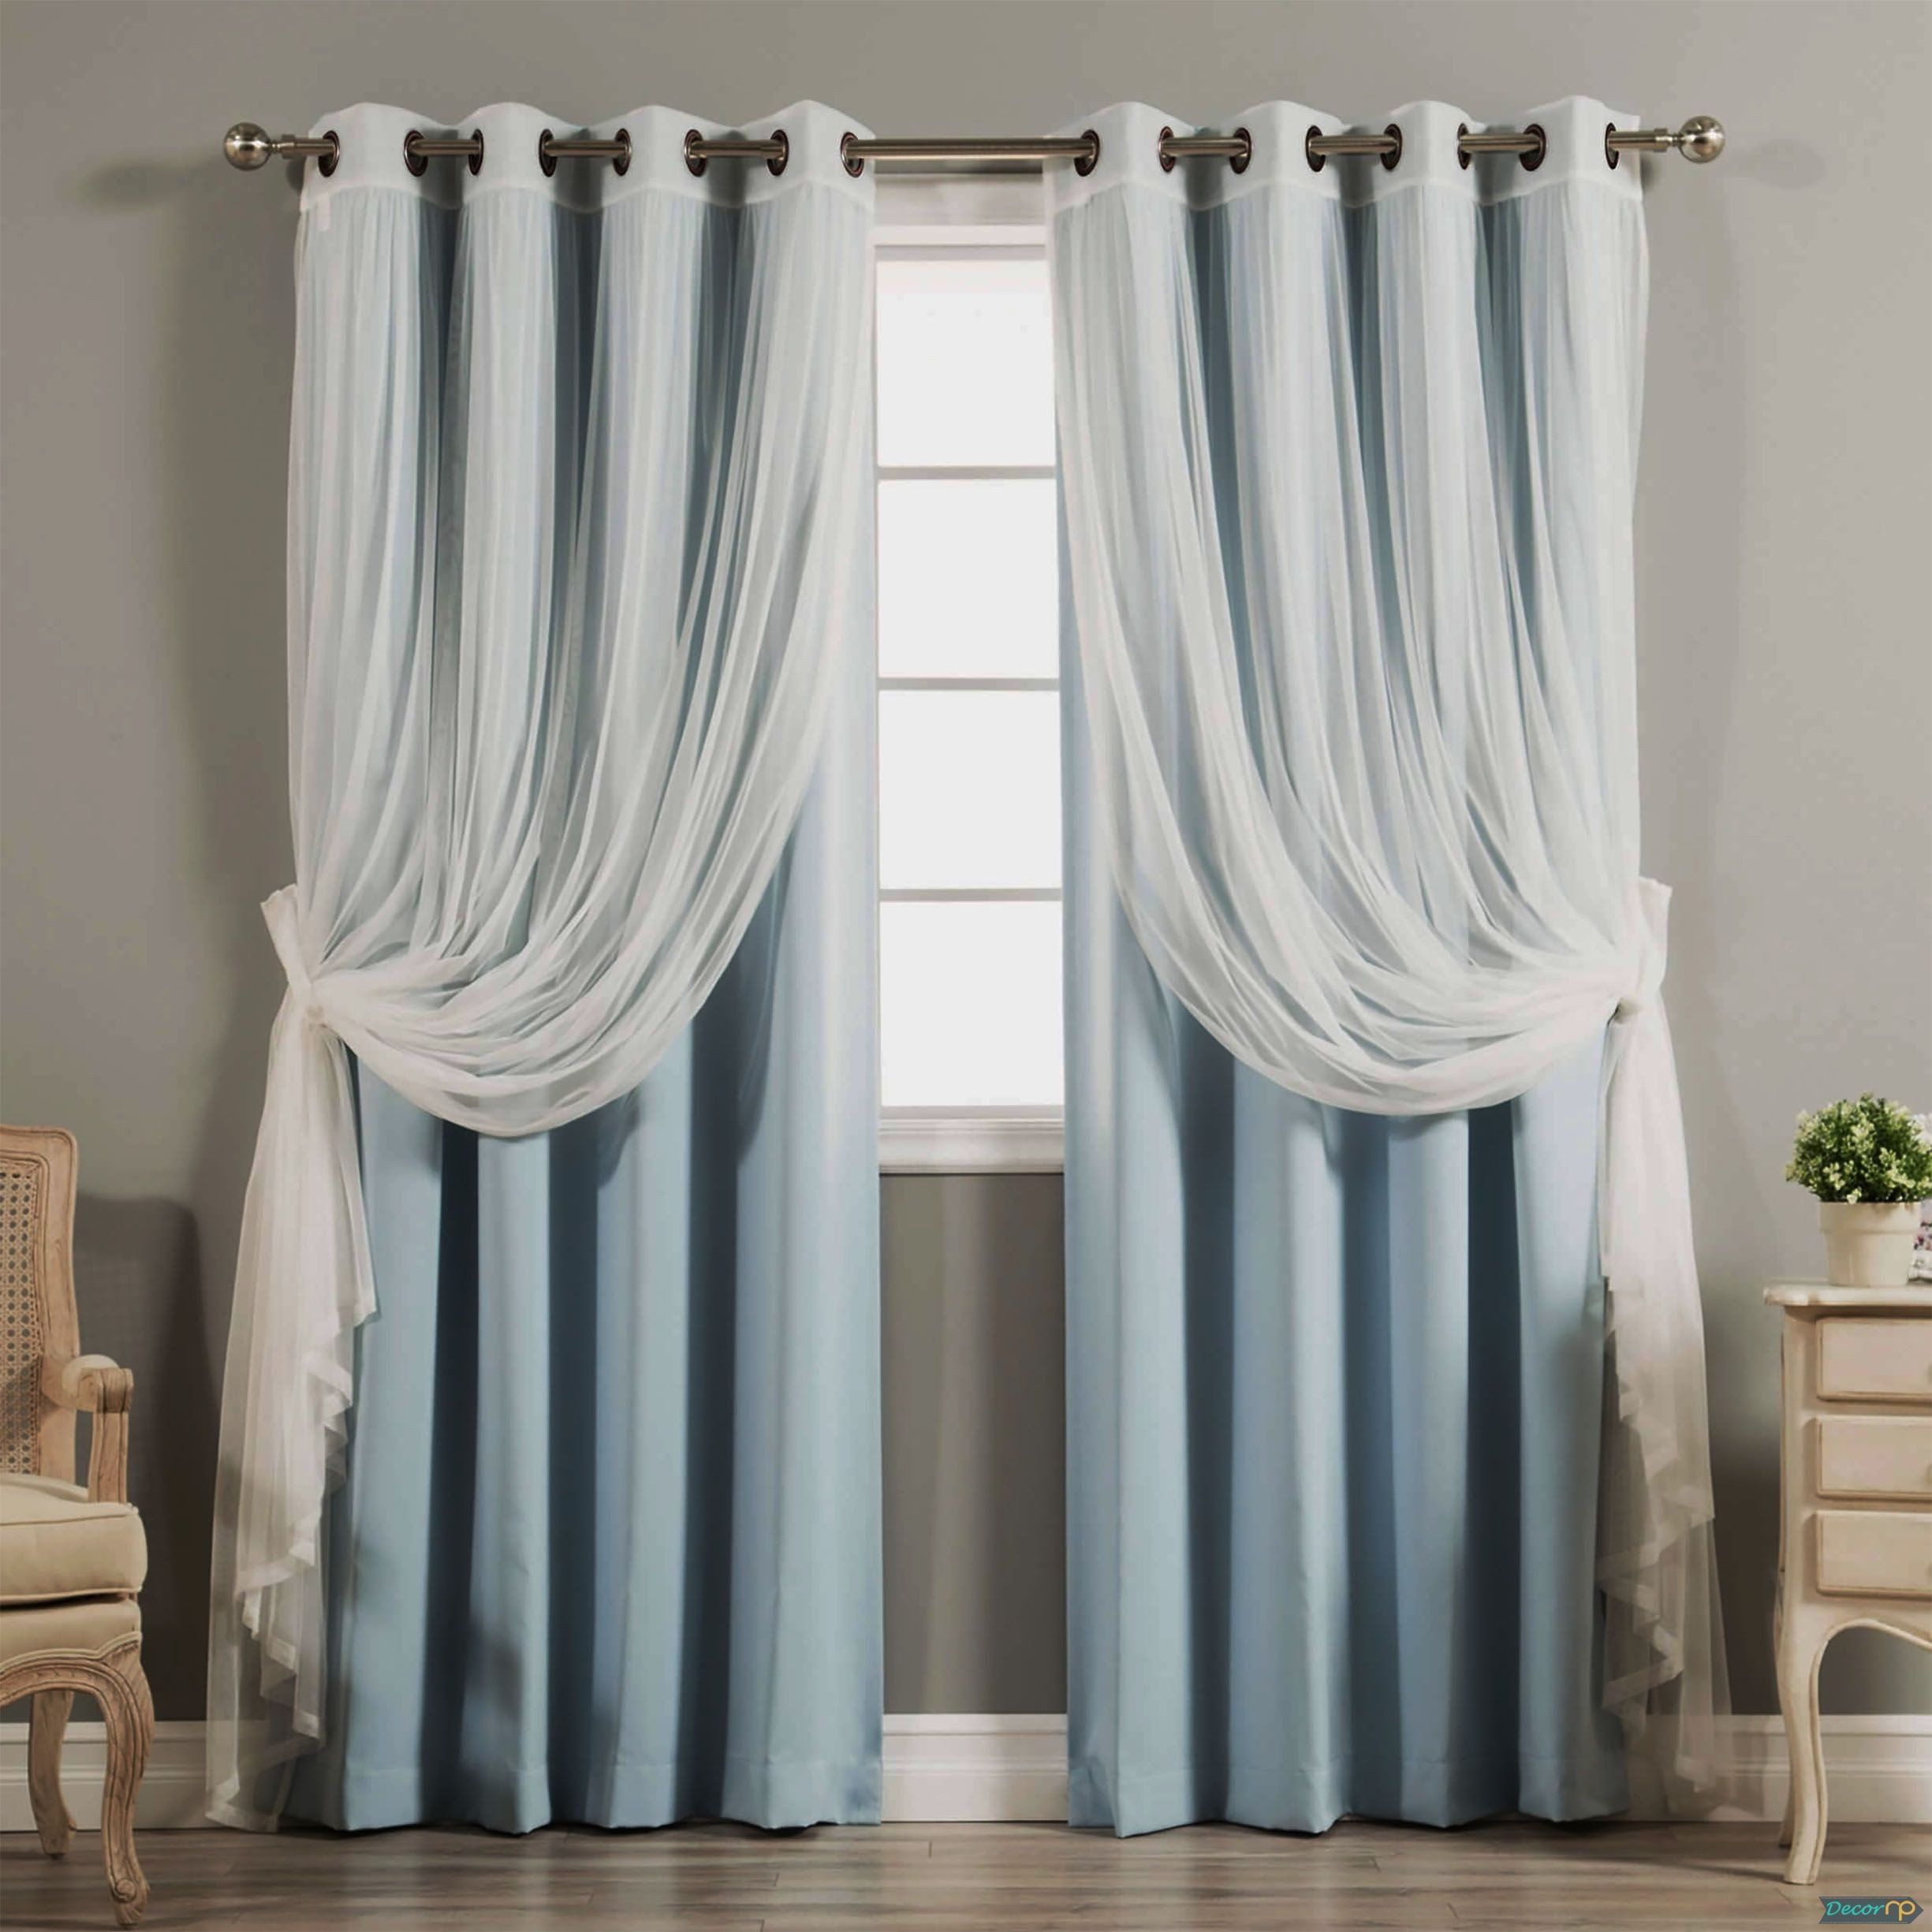 Best Curtains for Bedroom Elegant Eyelet Curtains – Modern Curtain Idea